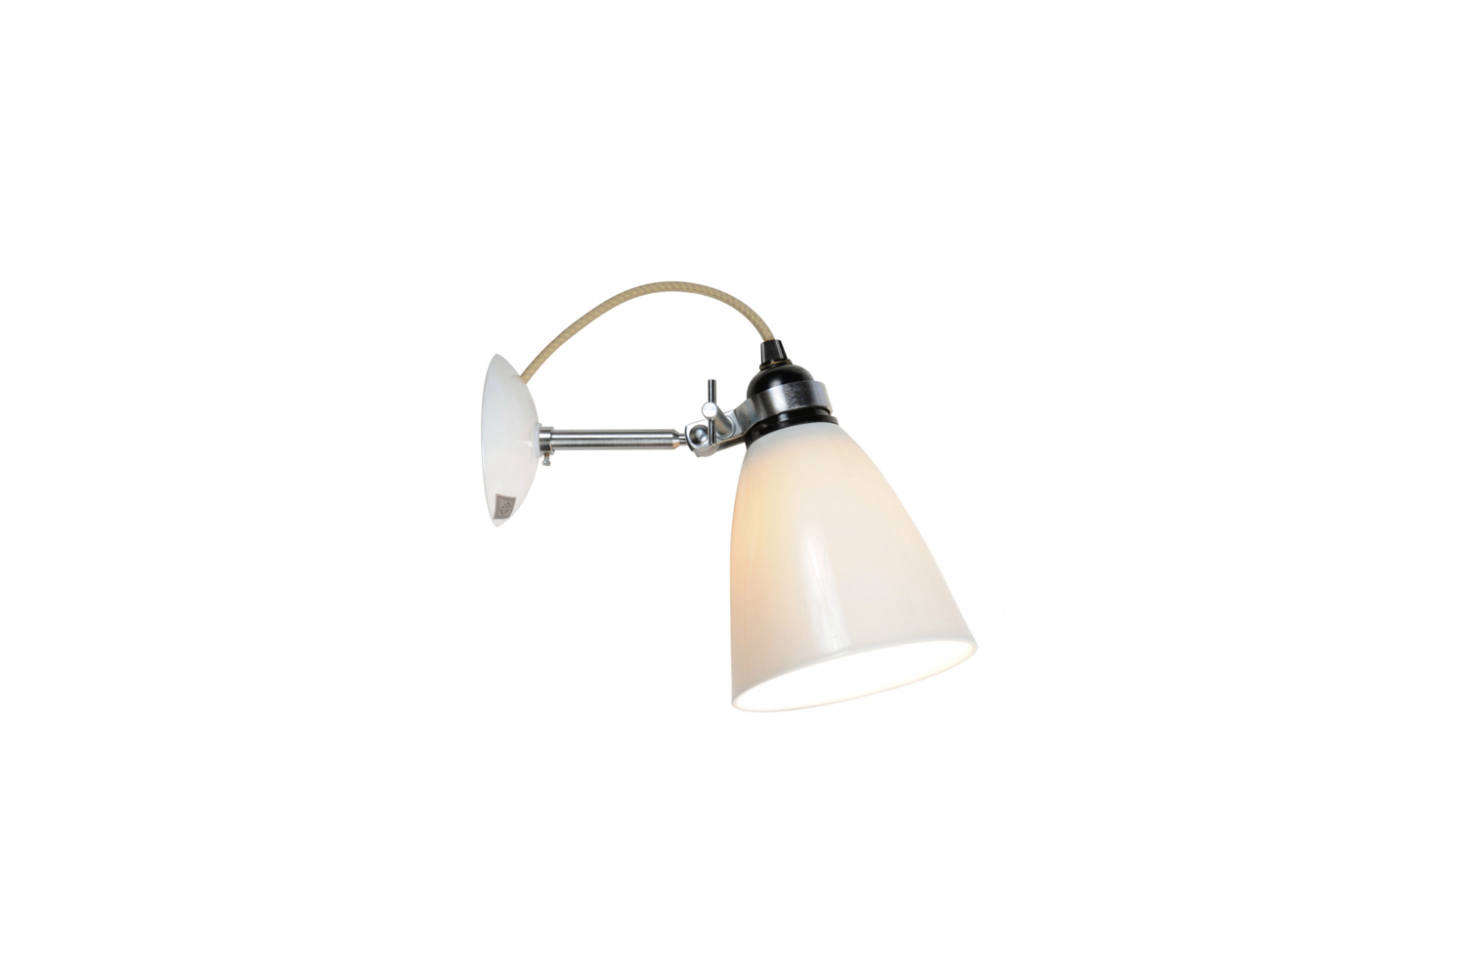 The Original BTC Hector Medium Dome Wall Light in bone white china can be found for under $0 at various retailers, including the Conran Shop for £src=